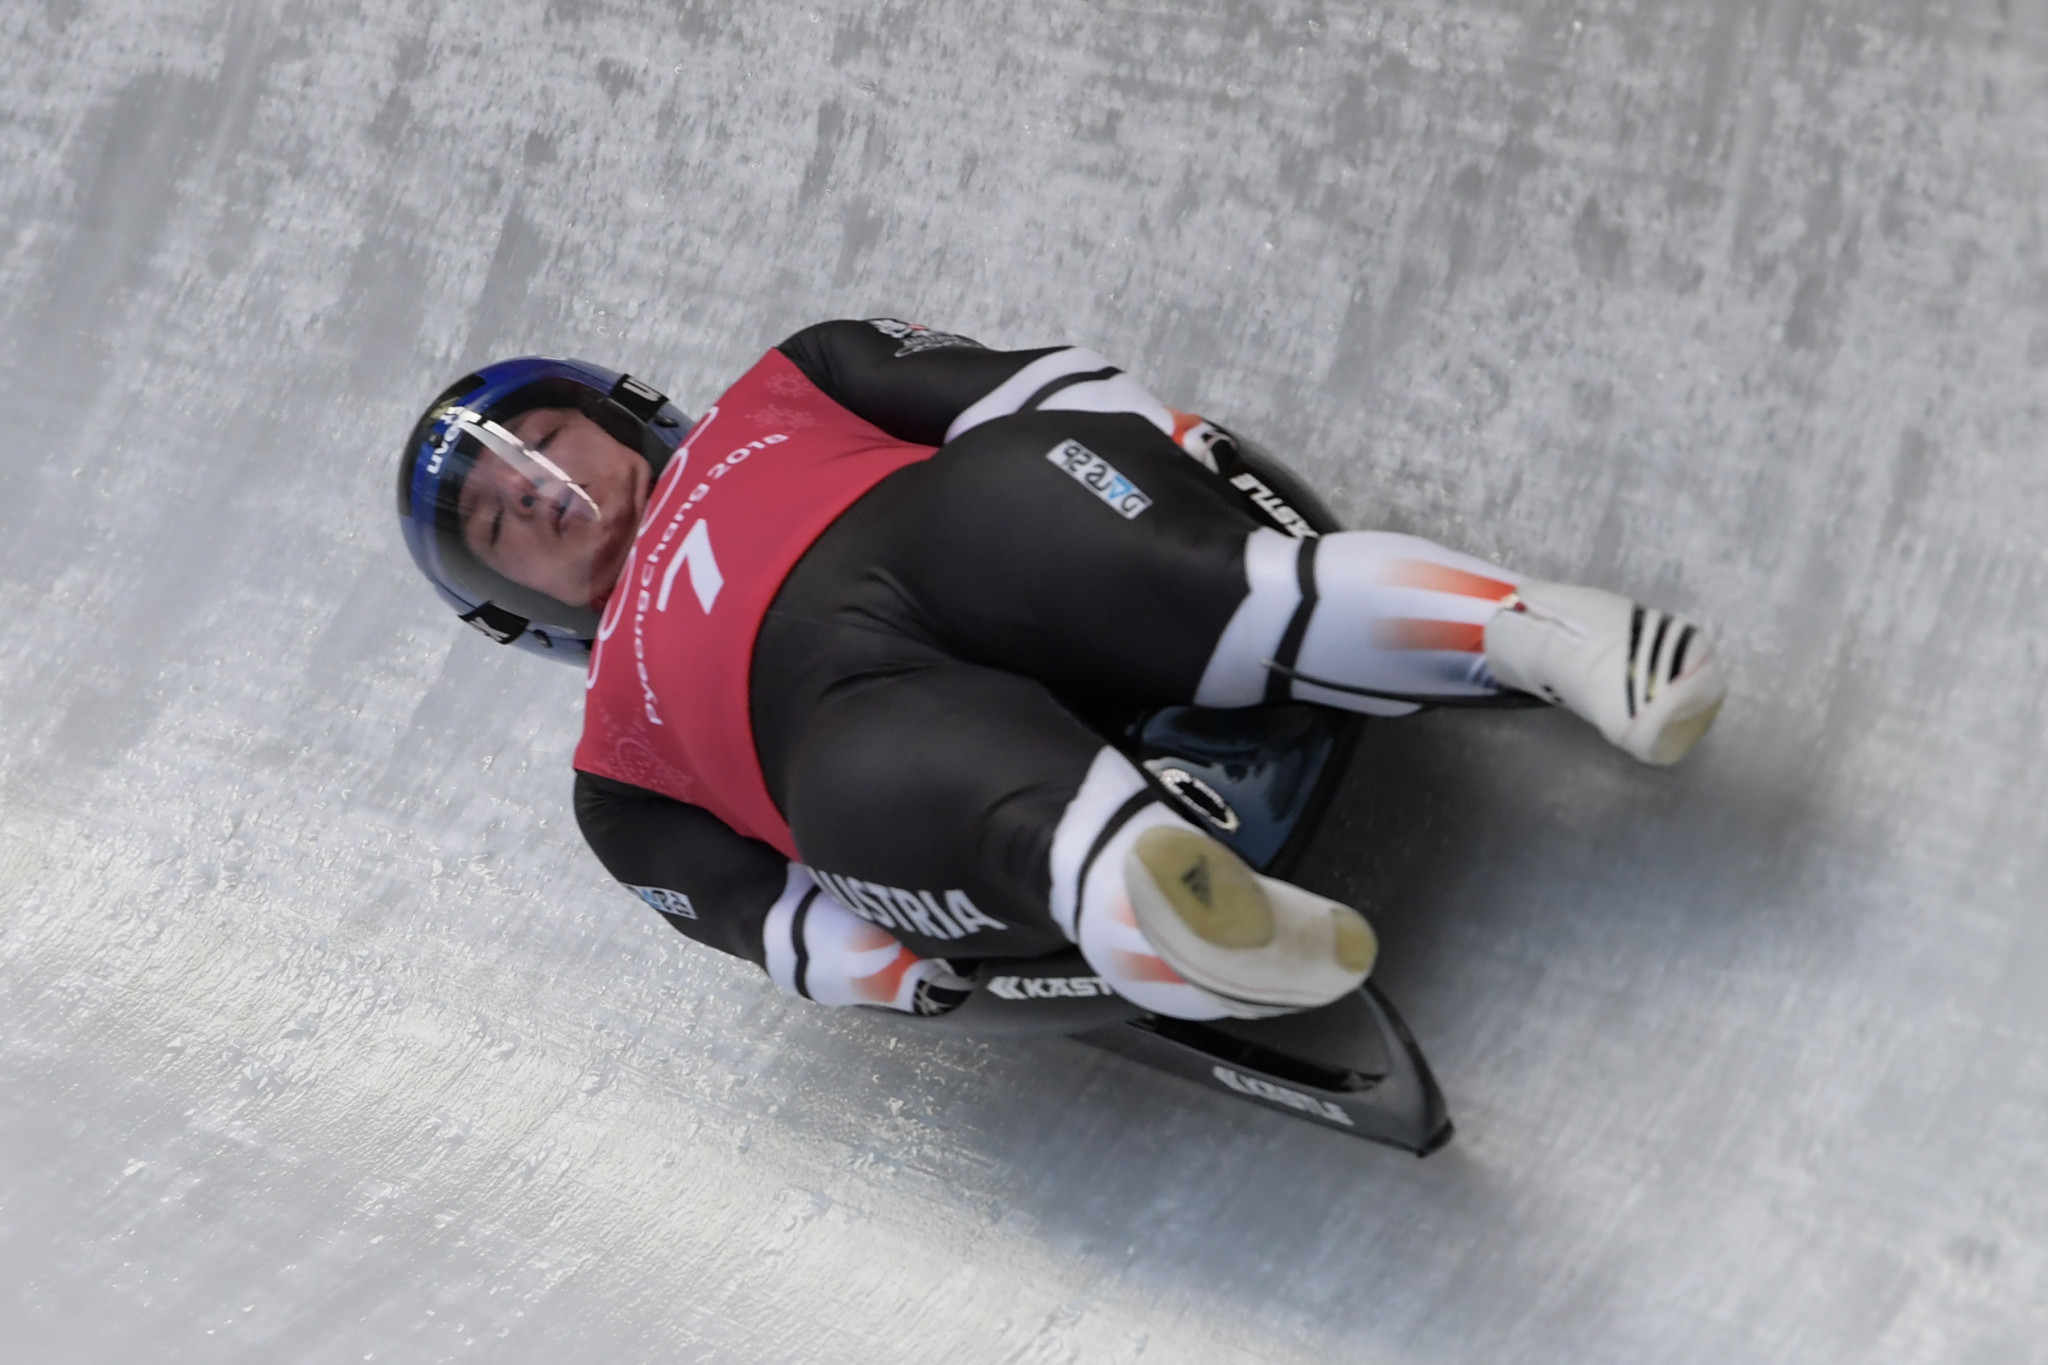 Austria's Wolfgang Kindl will look to regain his lead in the overall rankings after being disqualified at the last FIL Luge World Cup event in Lake Placid ©Getty Images